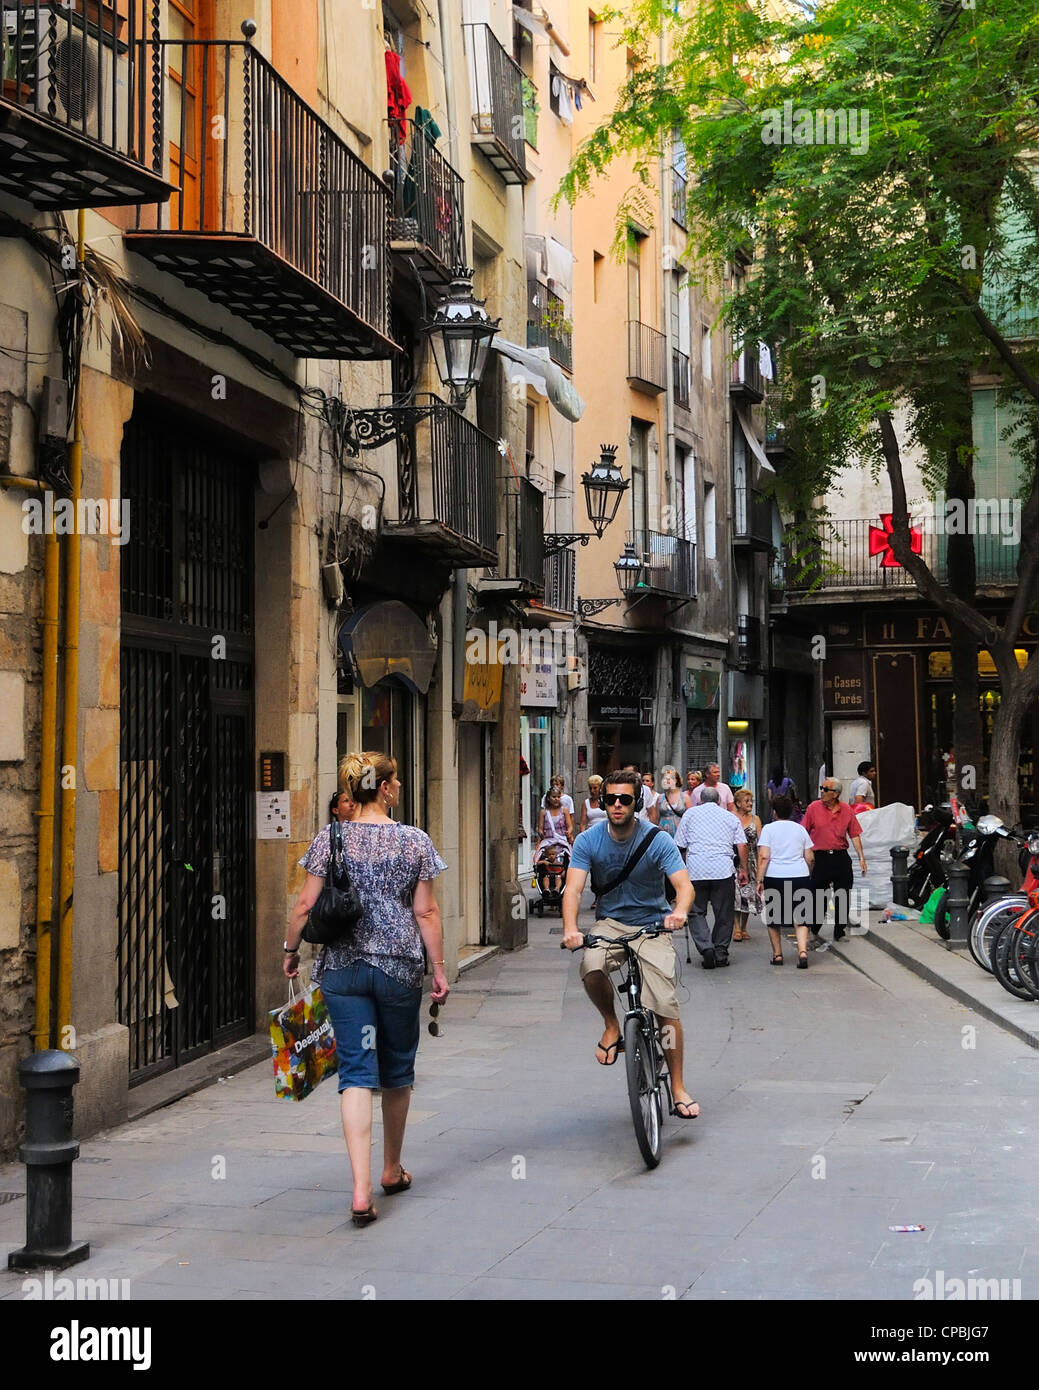 Tourists filled small streets in the Barri Gotic (Gothic quarter), Barcelona, Spain. - Stock Image